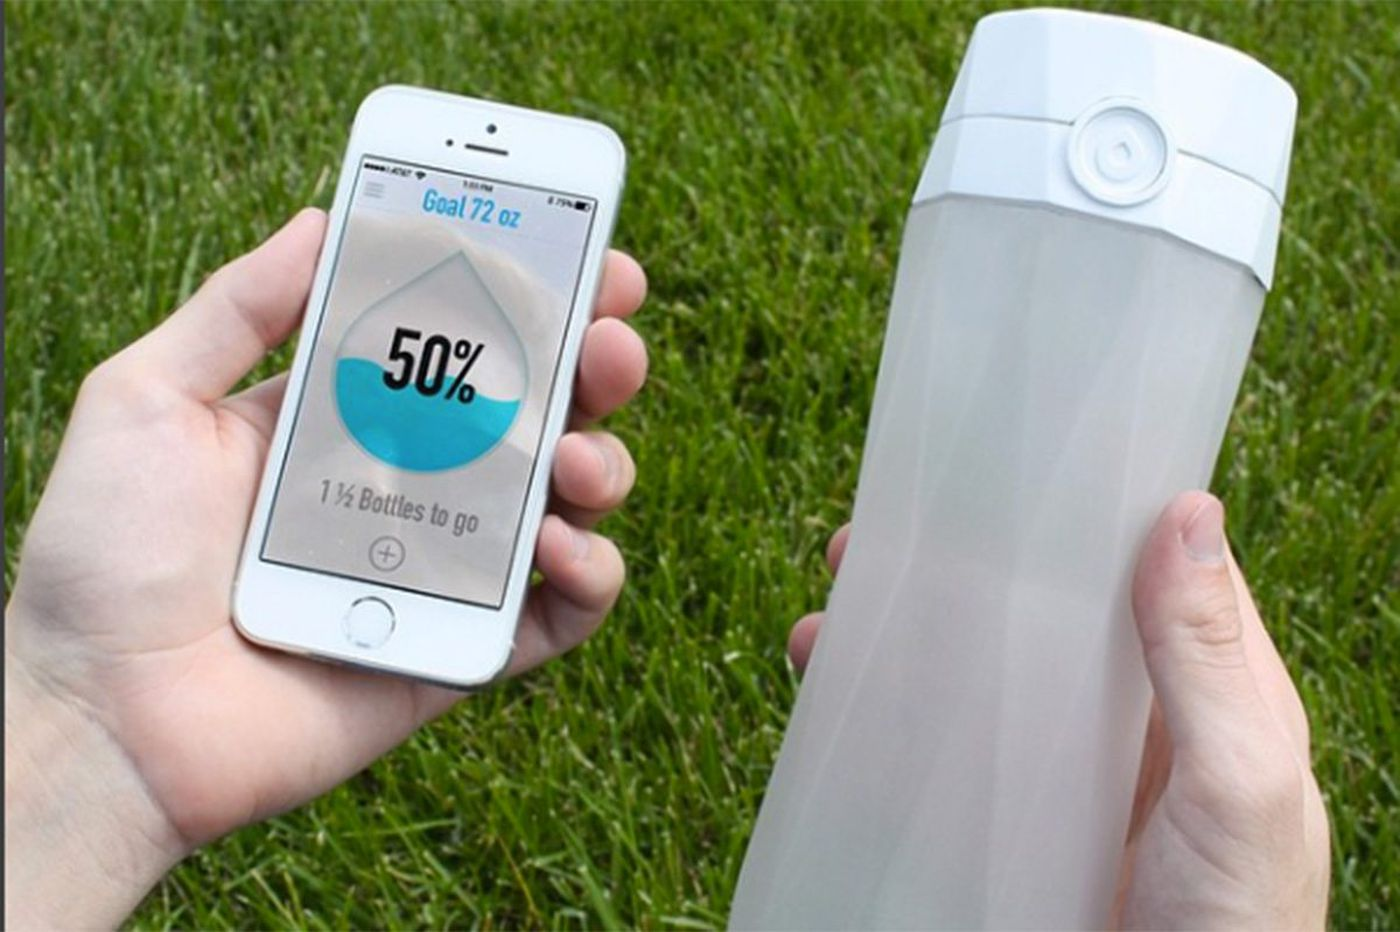 Can a $55 water bottle prevent kidney stones? Penn and CHOP aim to find out.